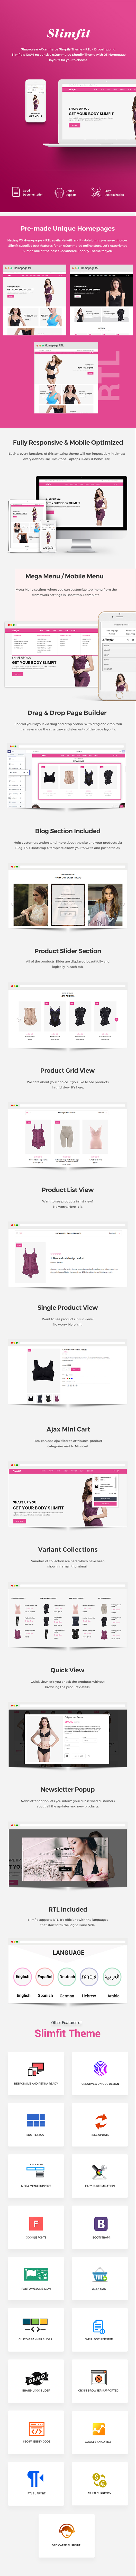 Slimfit - Shapewear eCommerce Shopify Theme - 1